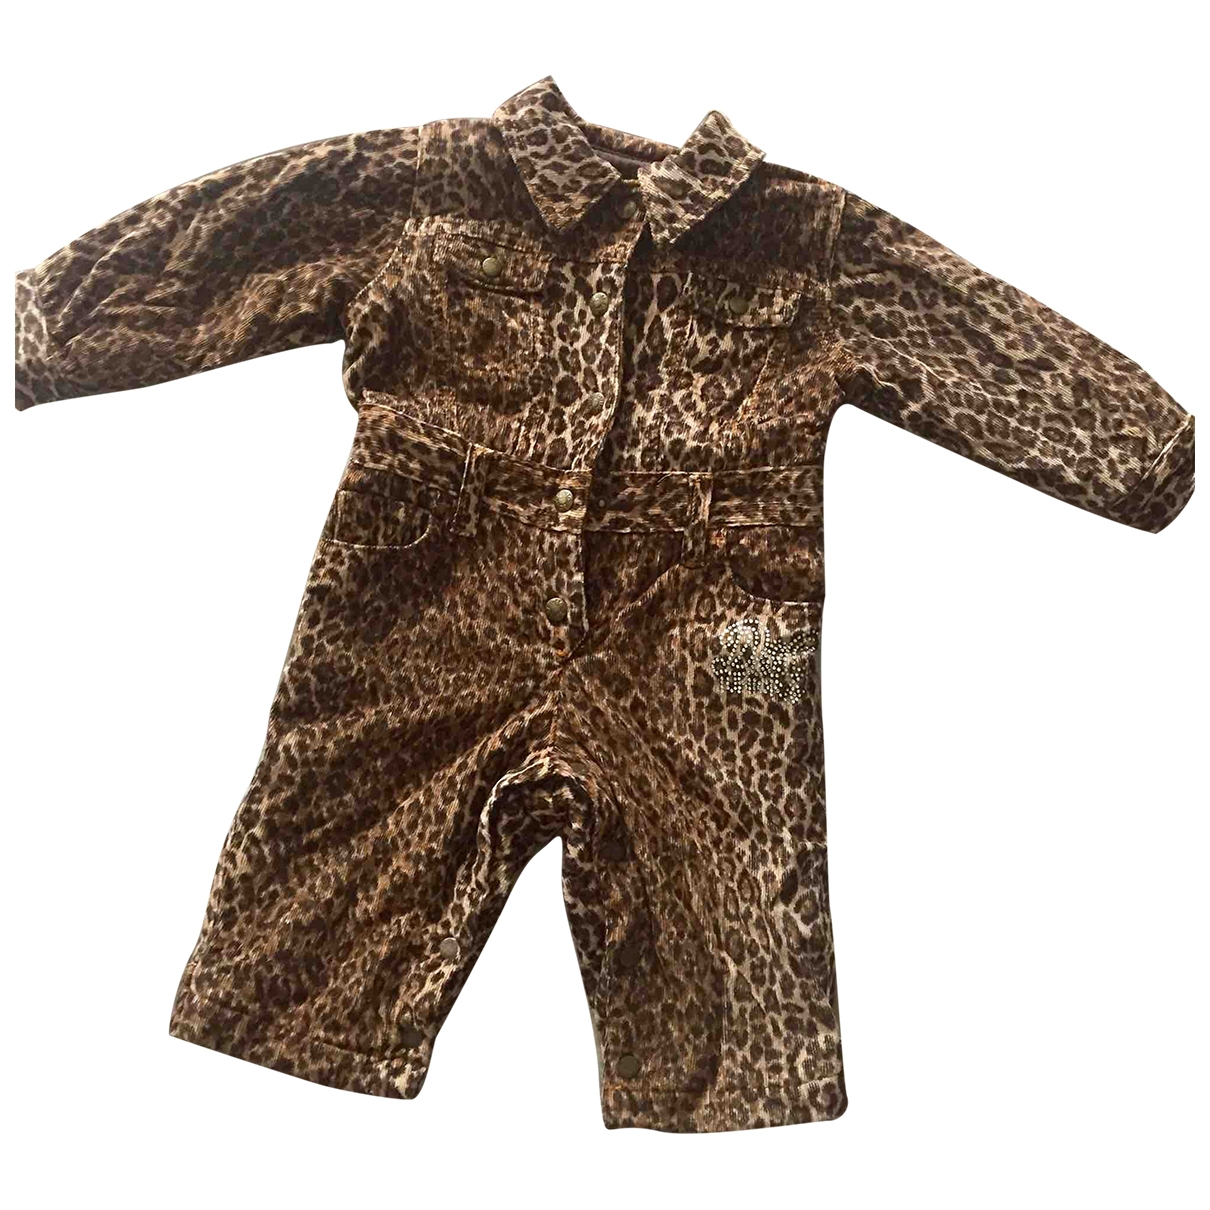 D&g \N Cotton Outfits for Kids 9 months - up to 71cm FR